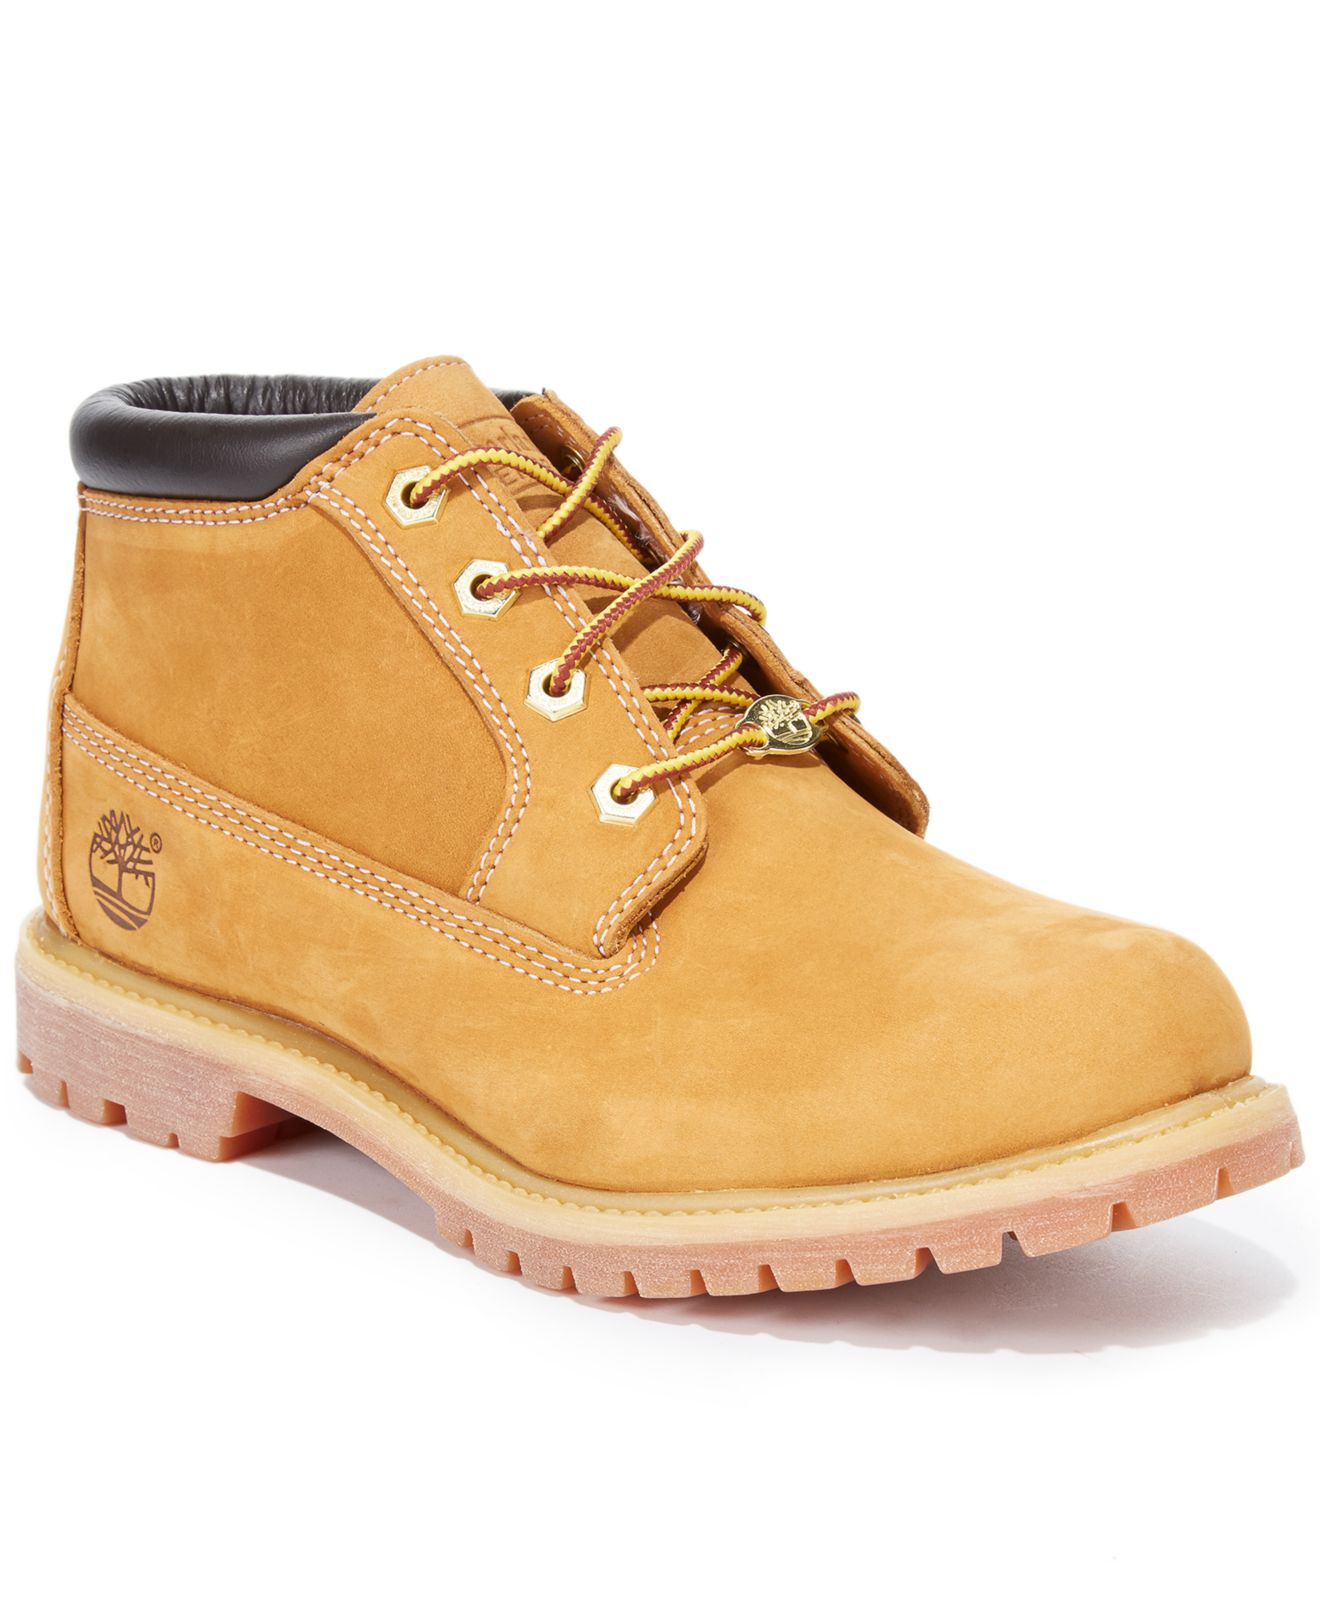 Luxury Details About Timberland Women39s Kenniston 6Inch LaceUp Boots